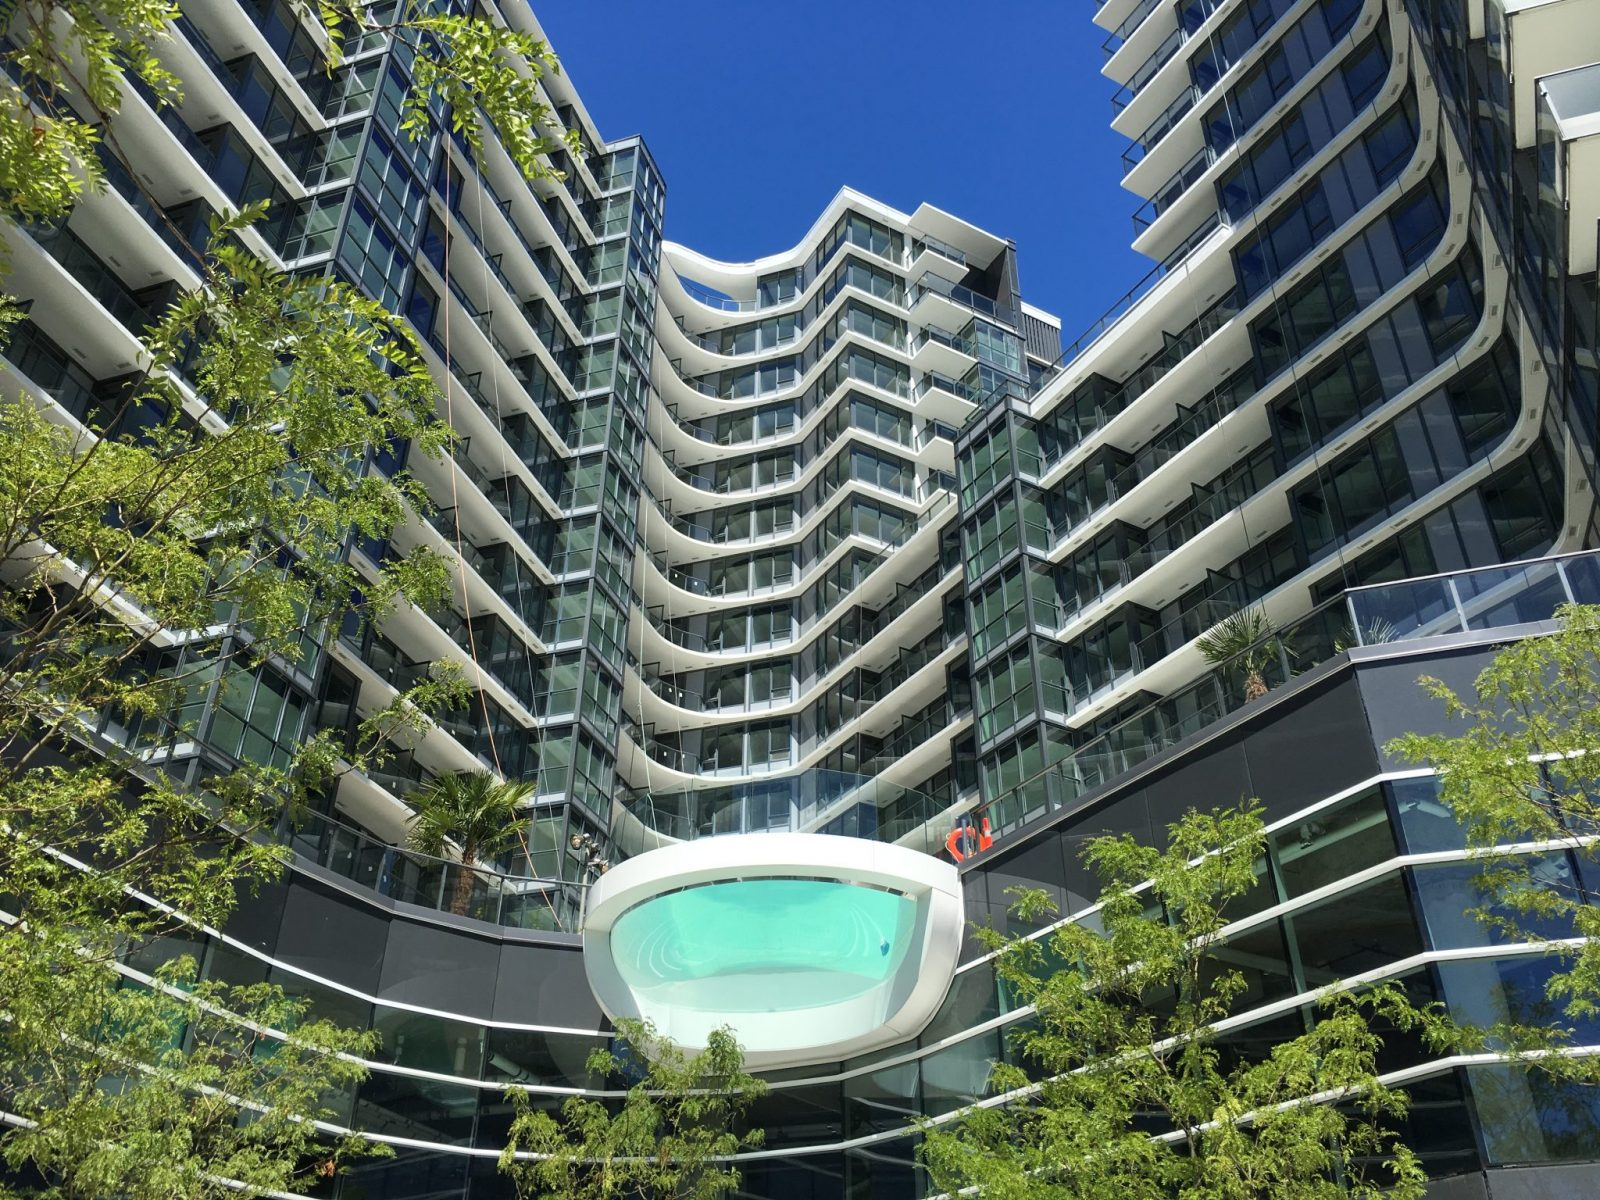 One Pacific Shows Off Dramatic Glass Bottom Pool Urbanyvr